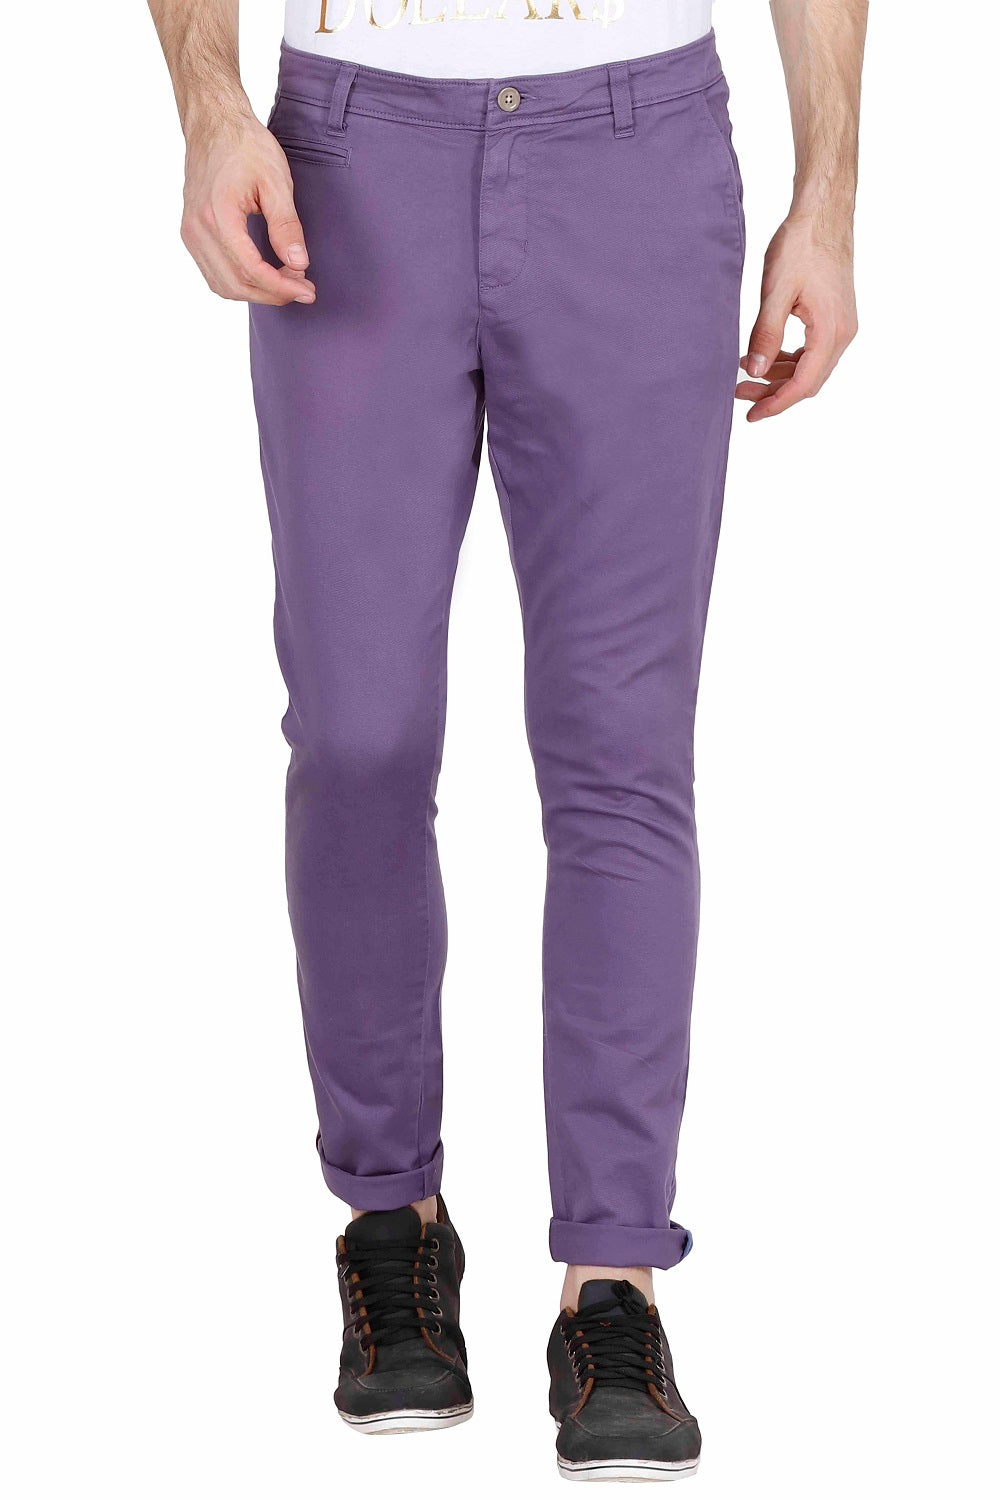 Men's Slim Fit Purple Chinos